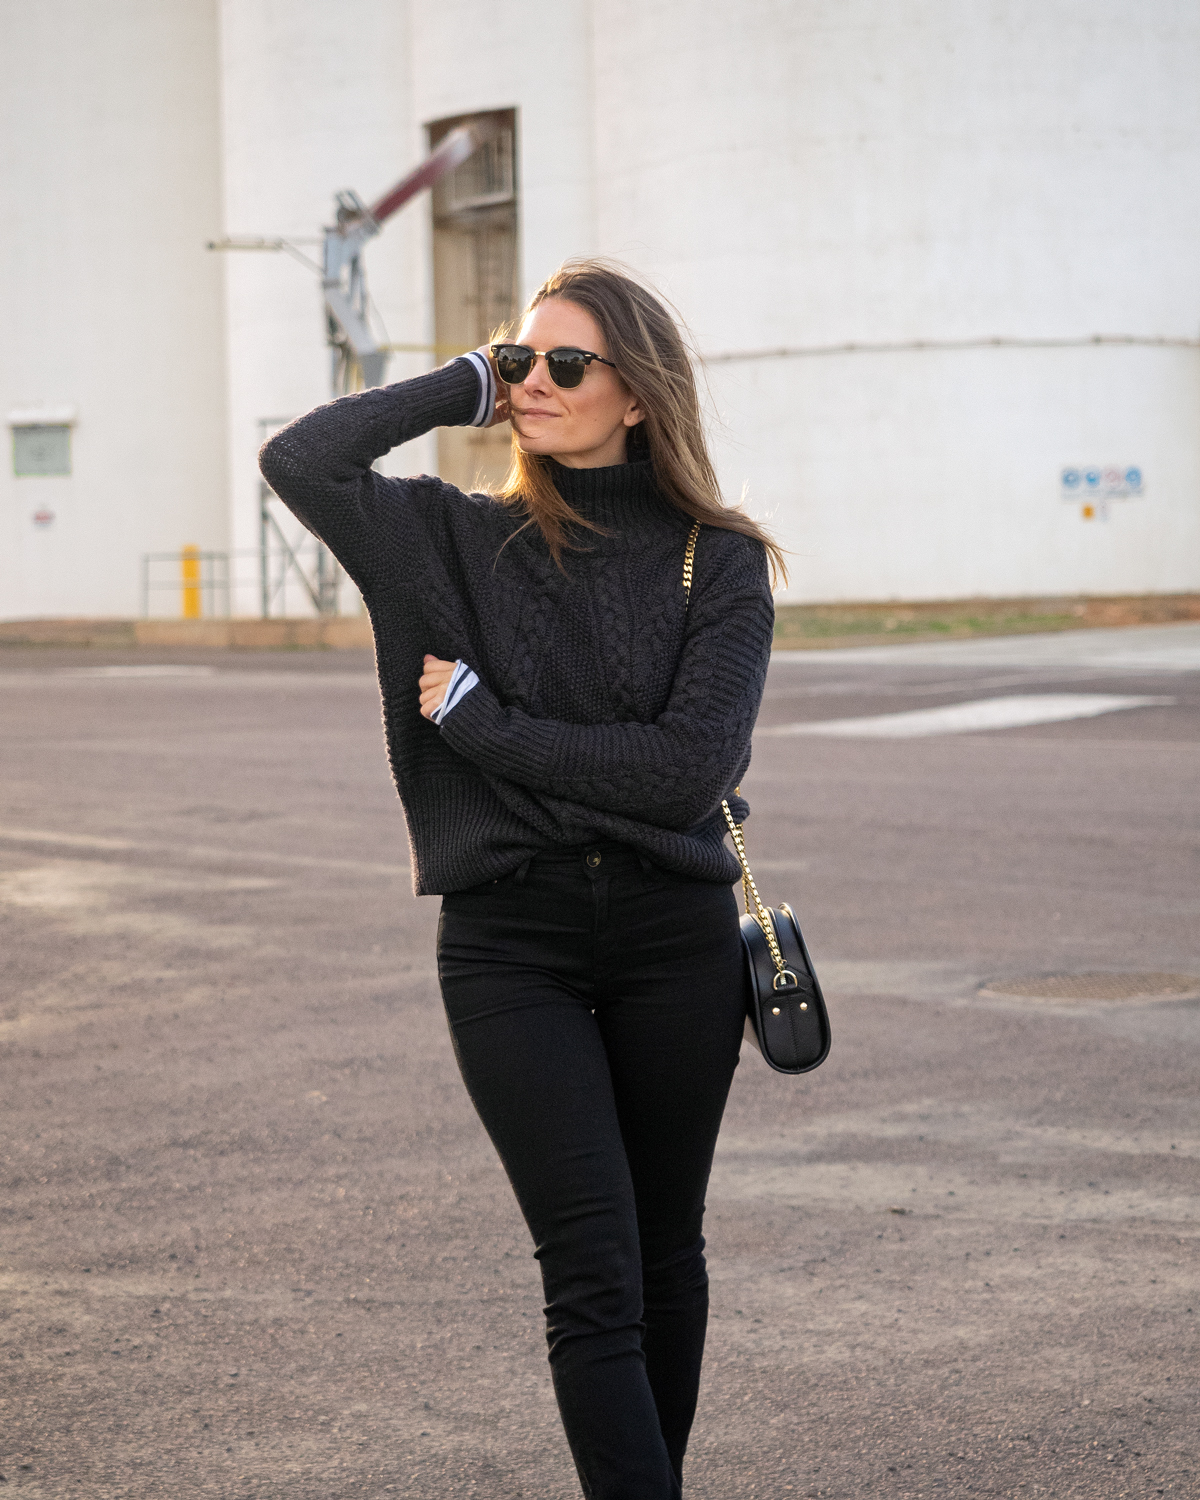 winter road trip style, Sassind black wool knit jumper, black Mavi skinny jeans, Dr Martens boots, APC half Moon bag, winter outfit worn by Jenelle Witty from style blog Inspiring Wit